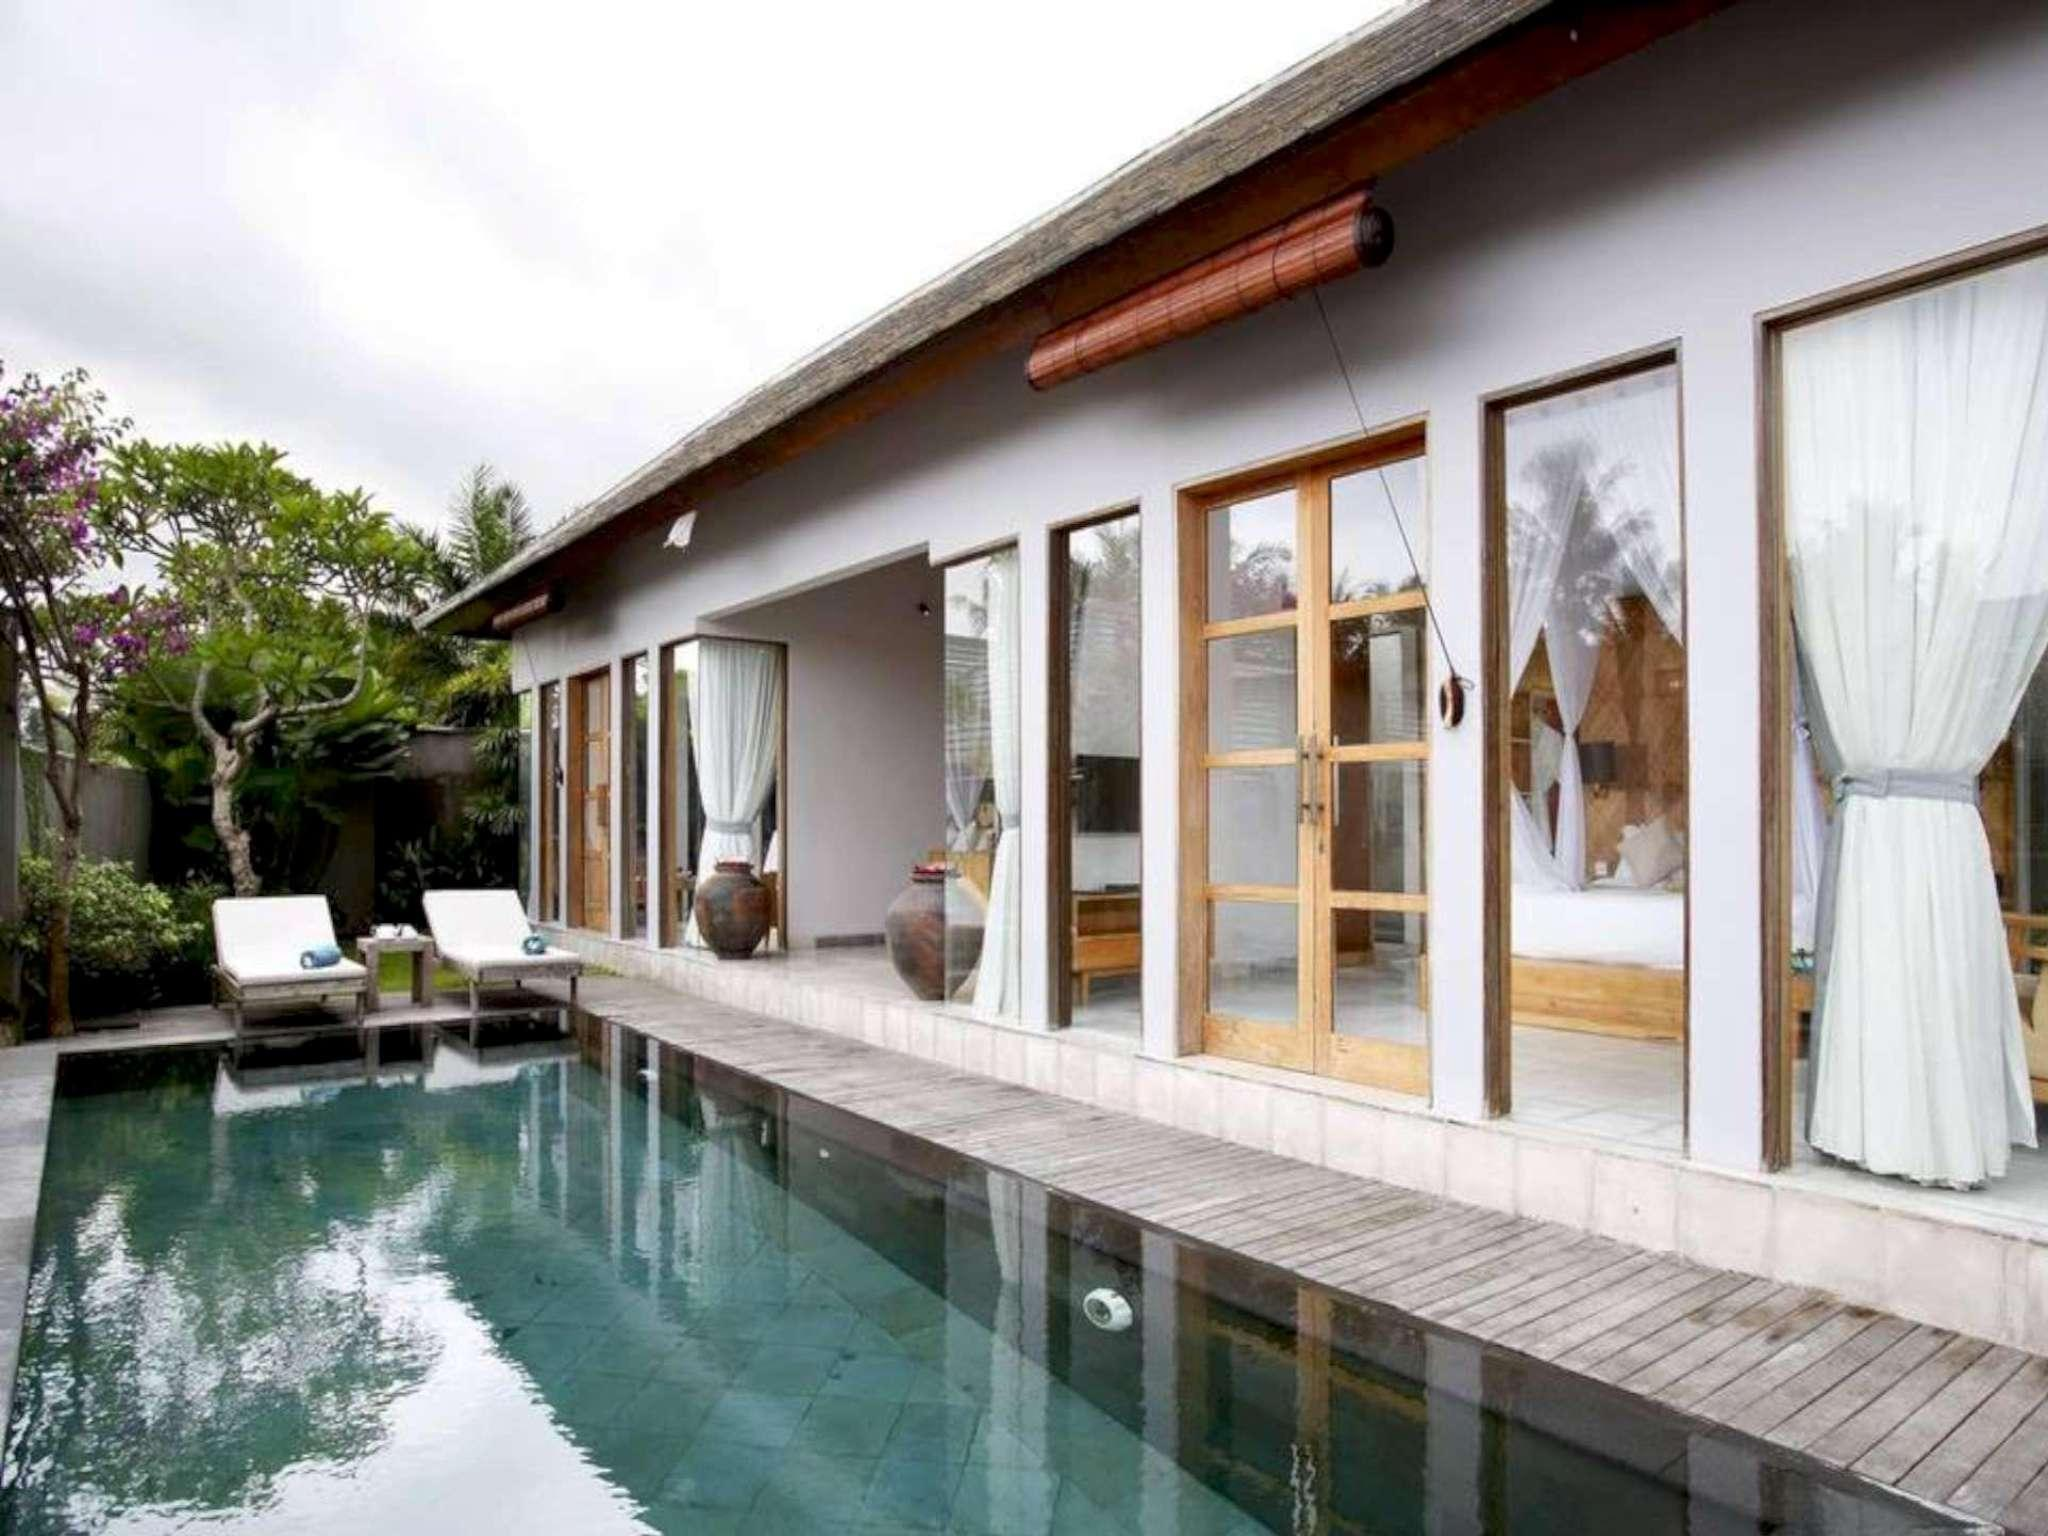 2 Bedroom Tropical Villa With Private Pool In Ubud